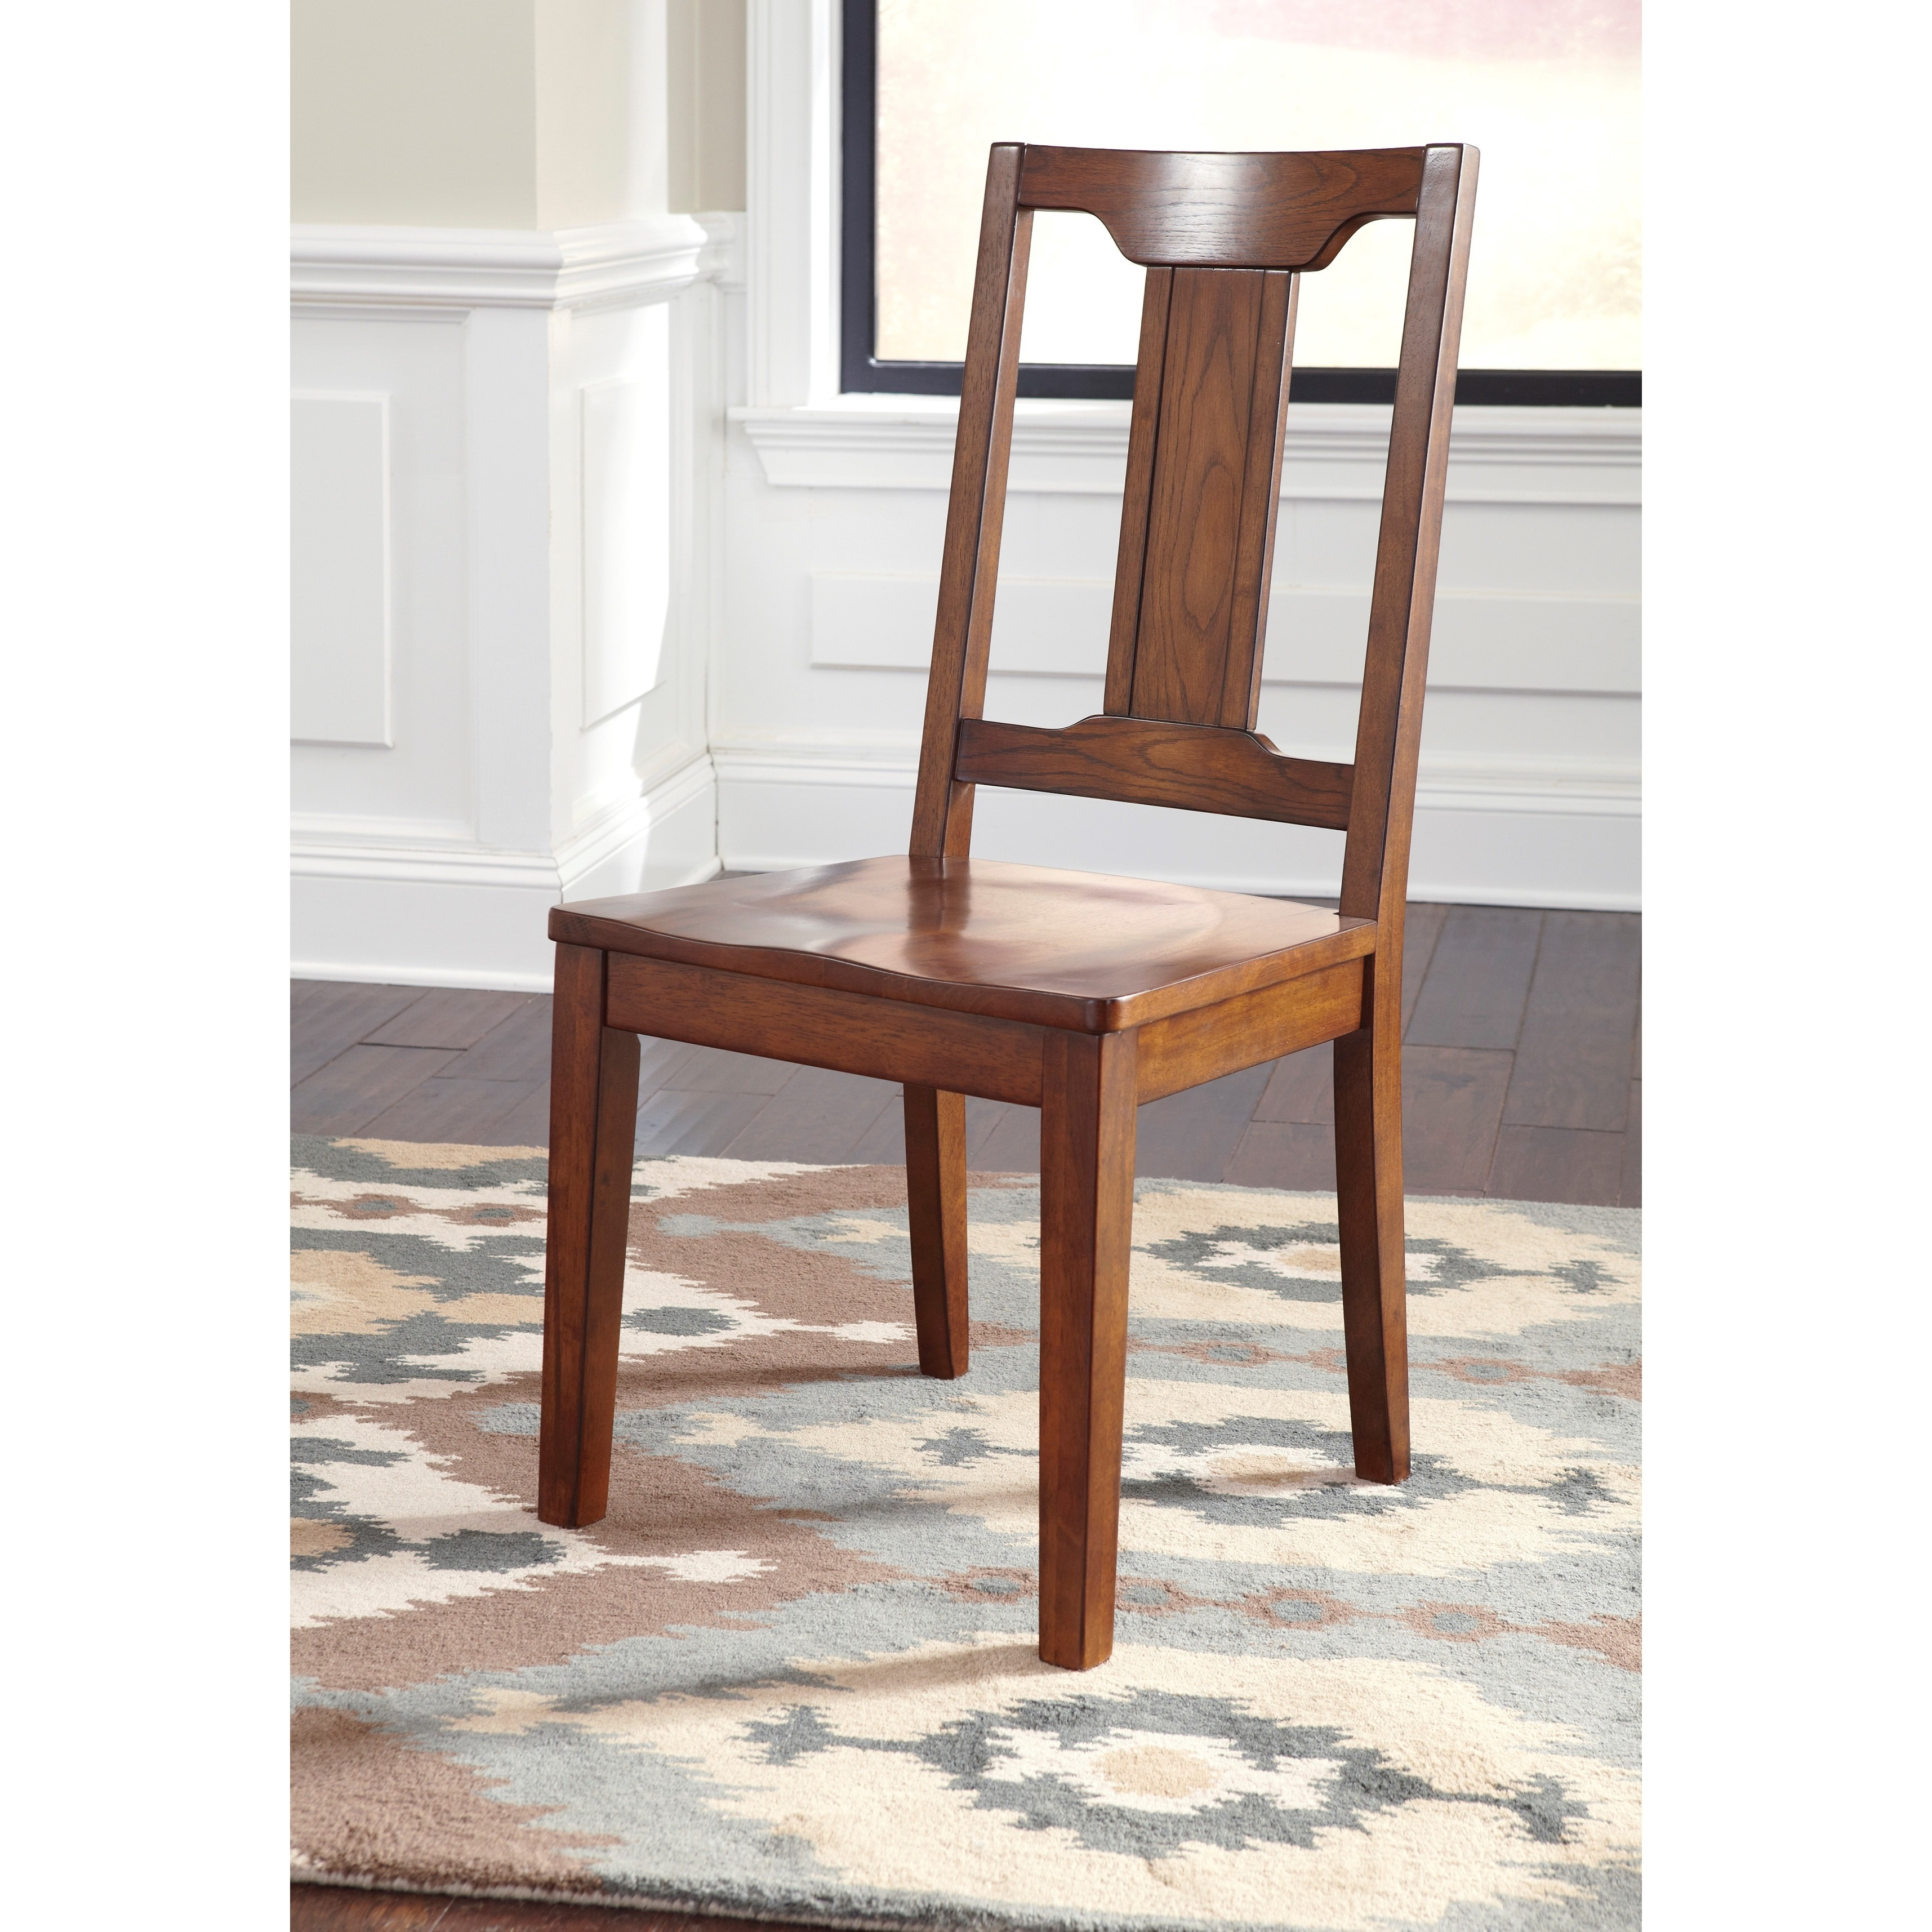 Signature Design by Ashley Chimerin Upholstered Dining Room Side Chair (Set of 2) at Sears.com